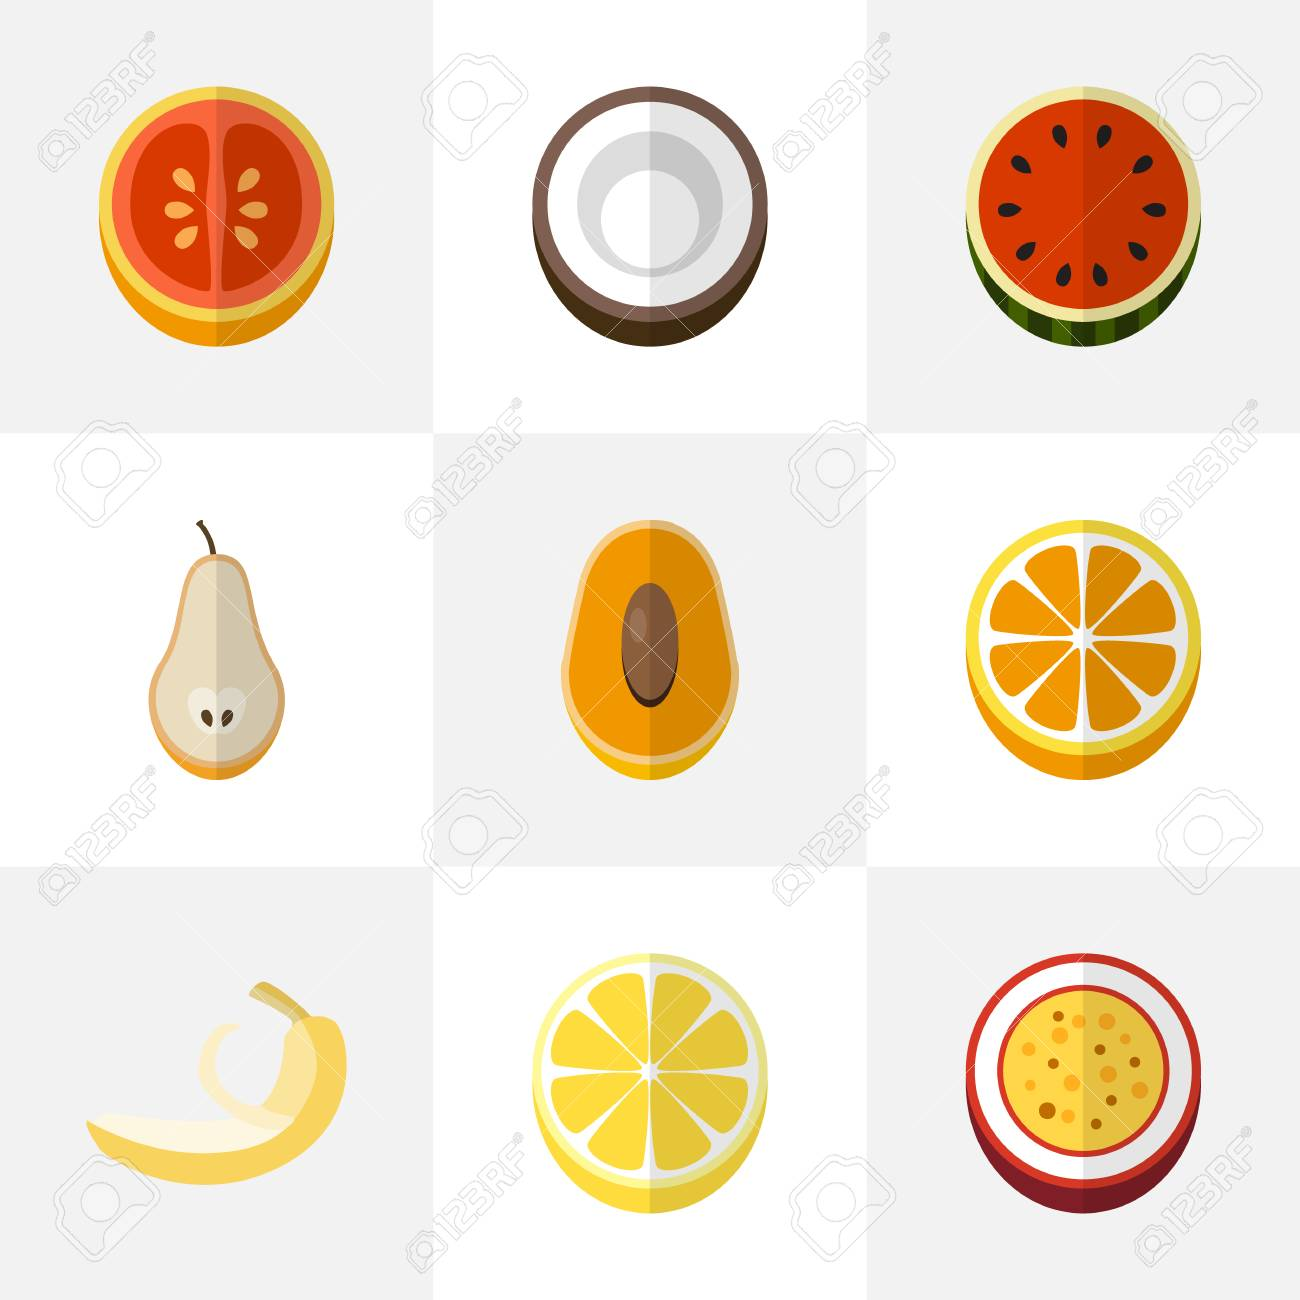 set of 9 editable fruits flat icons includes symbols such as